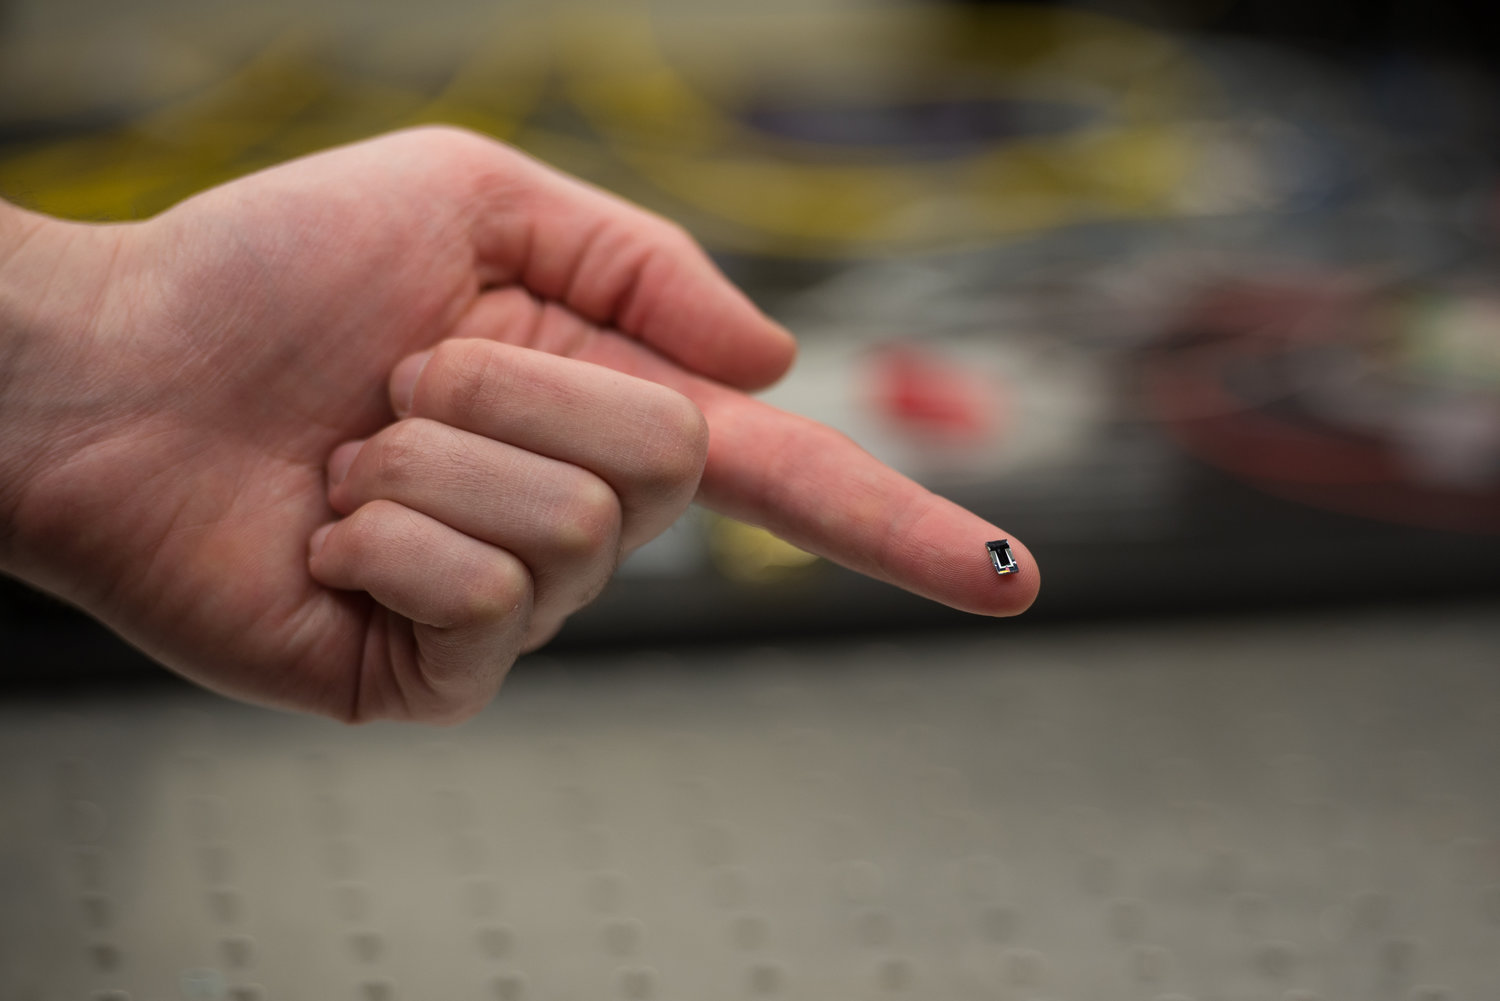 Voyant Photonics creates LiDAR that can fit on your fingertip